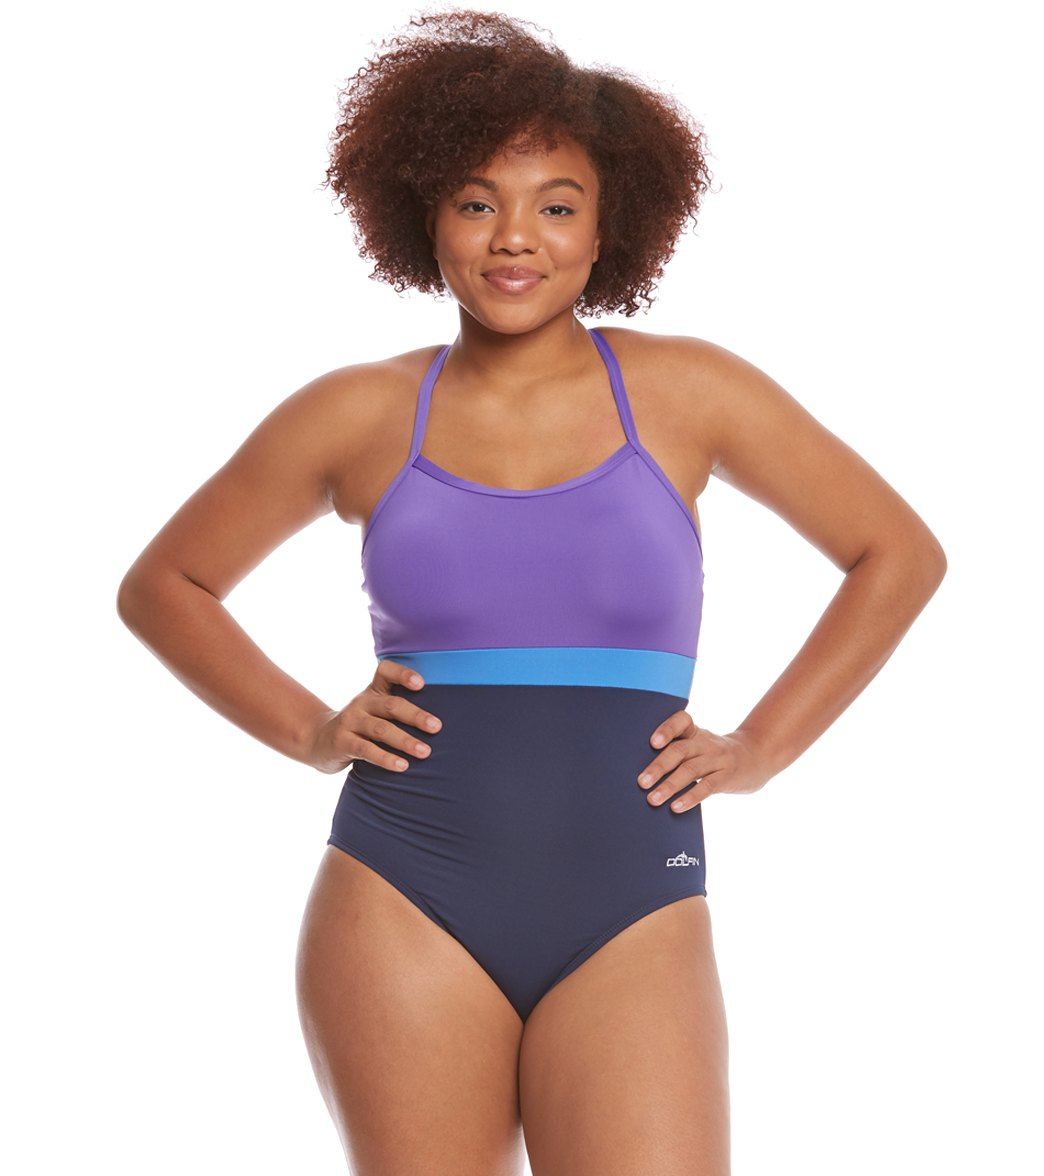 8cd9ab18b37 Dolfin Aquashape Women's Plus Size Cross Back One Piece Swimsuit at  SwimOutlet.com - Free Shipping